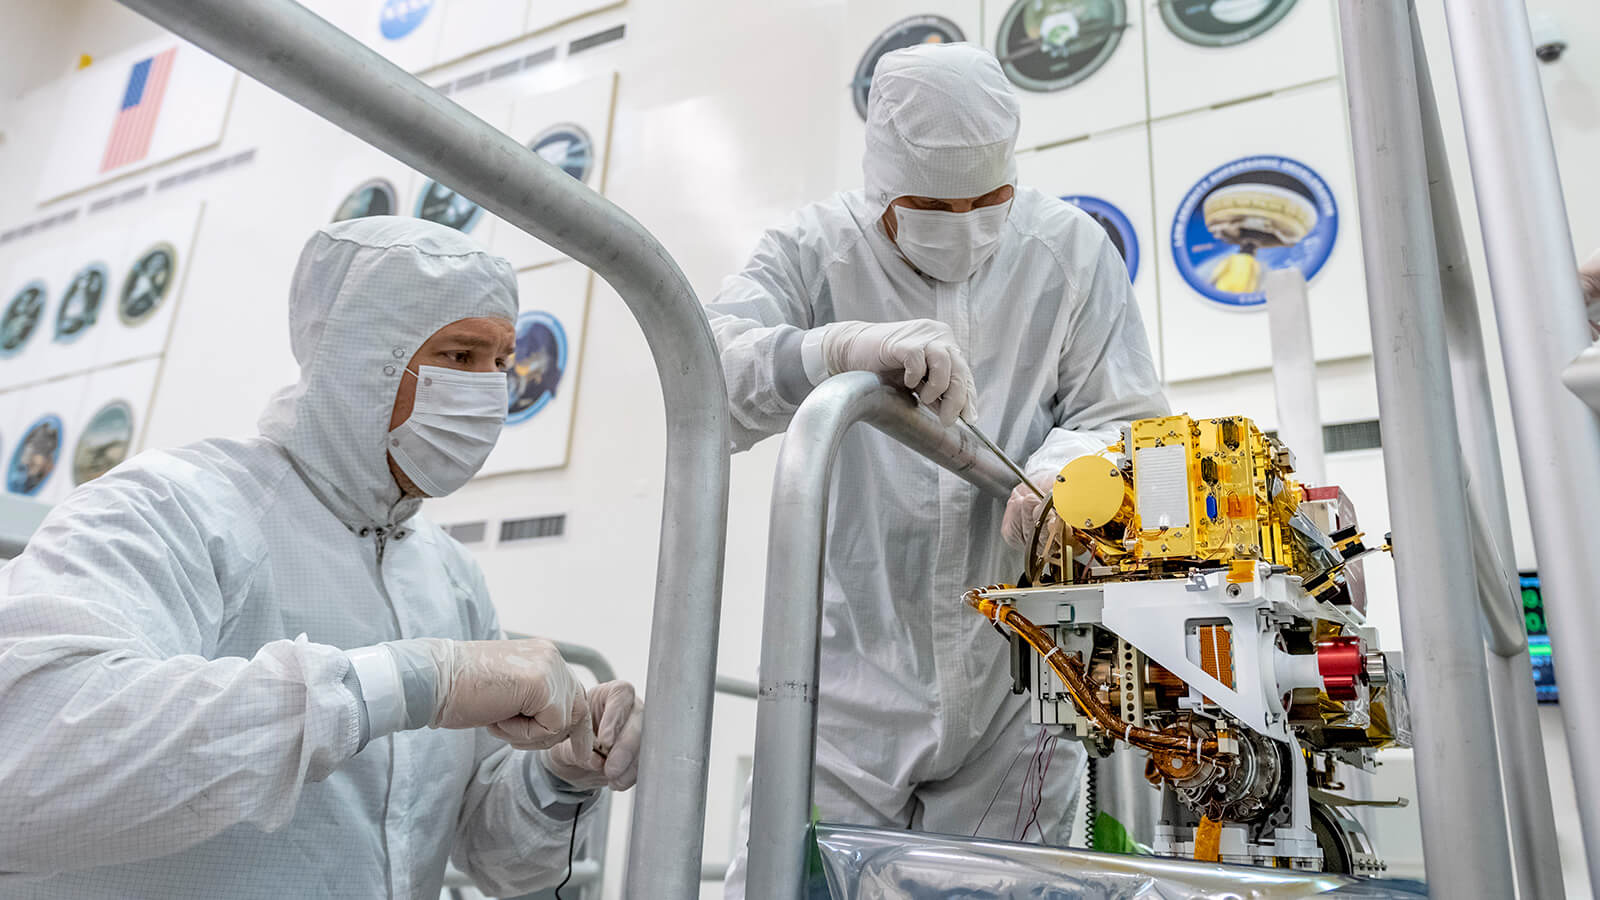 2020-rover-gets-new-instruments